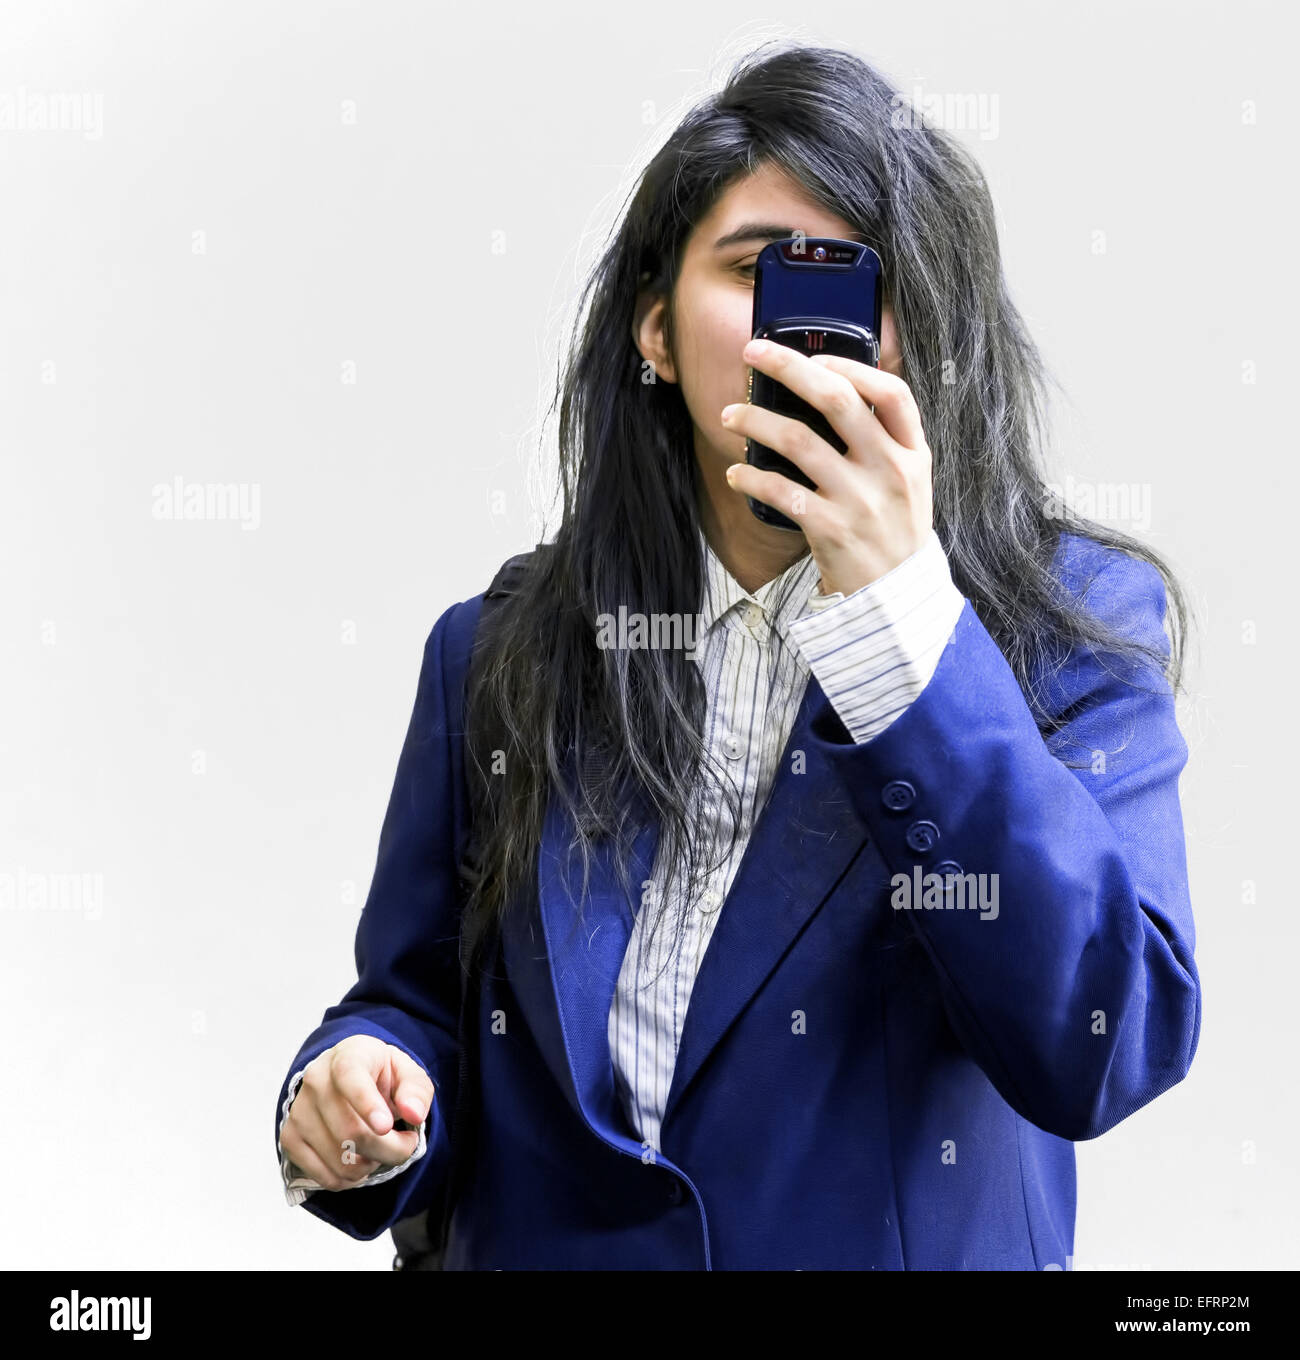 Latina teen girl holding cellphone pointed at camera - Stock Image